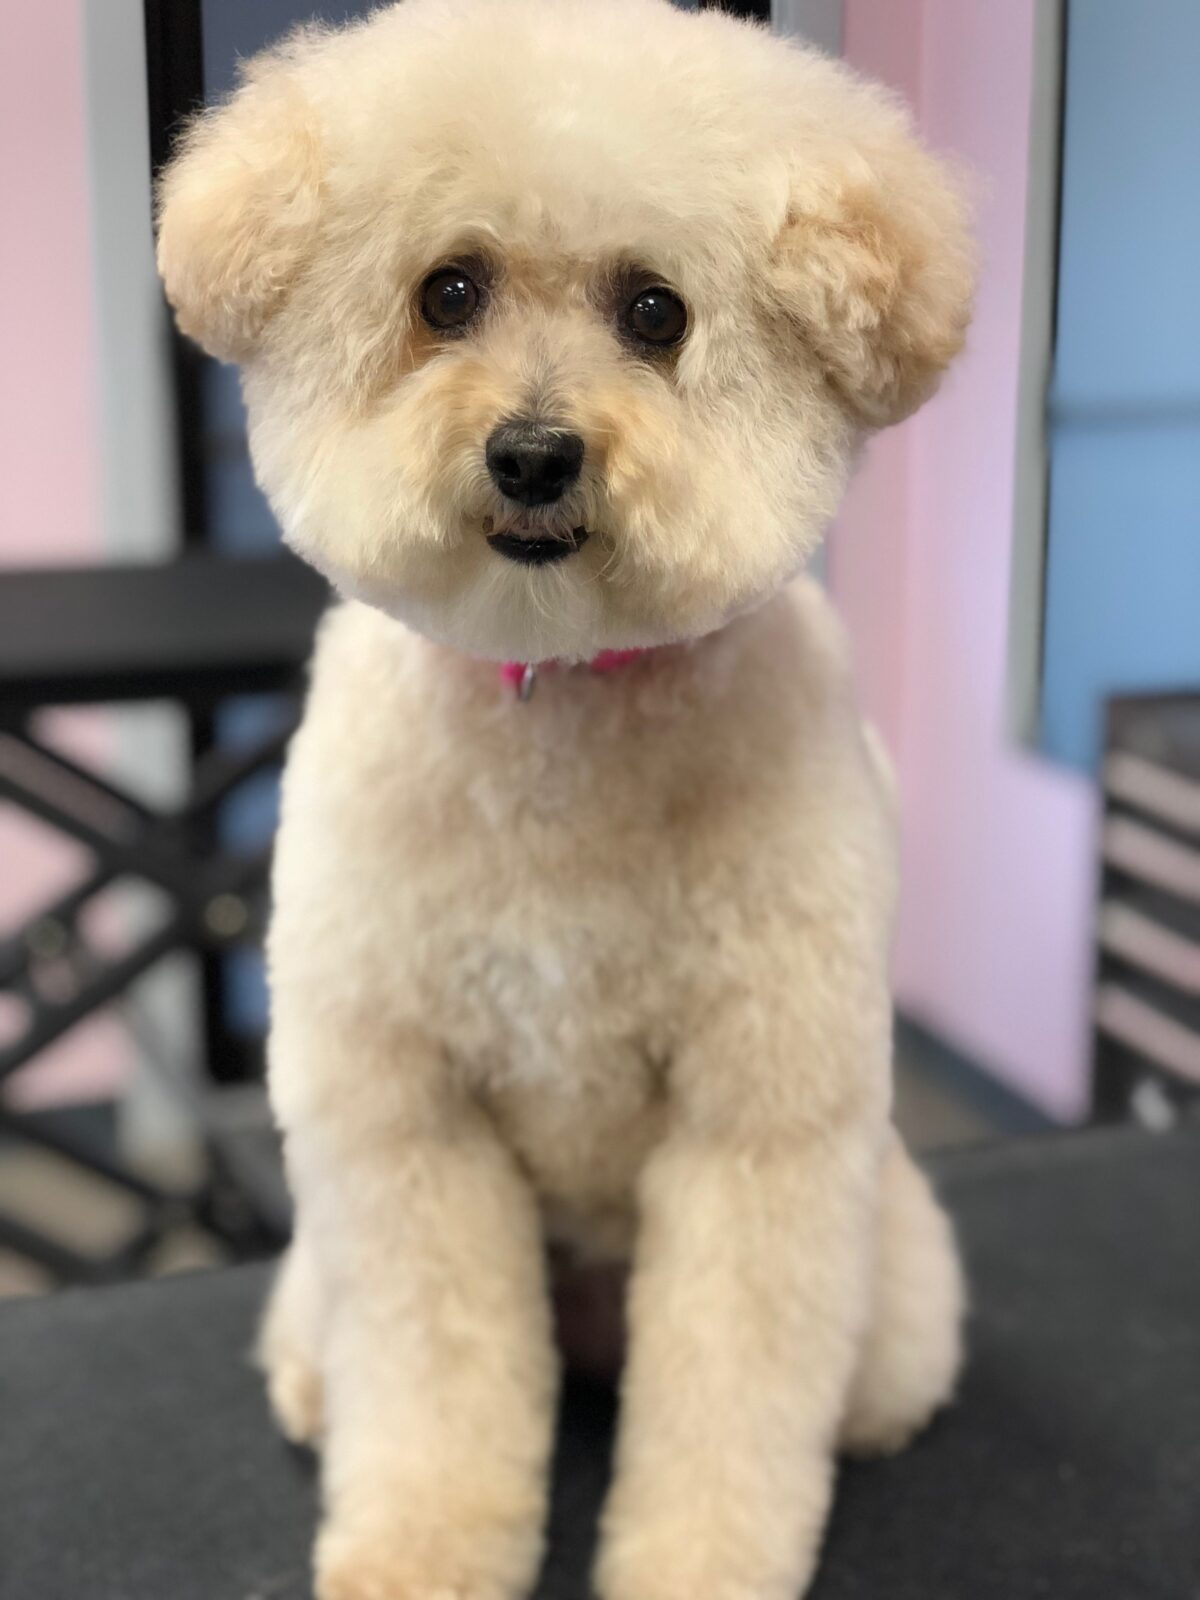 Dog Groomers in Crown Point Indiana